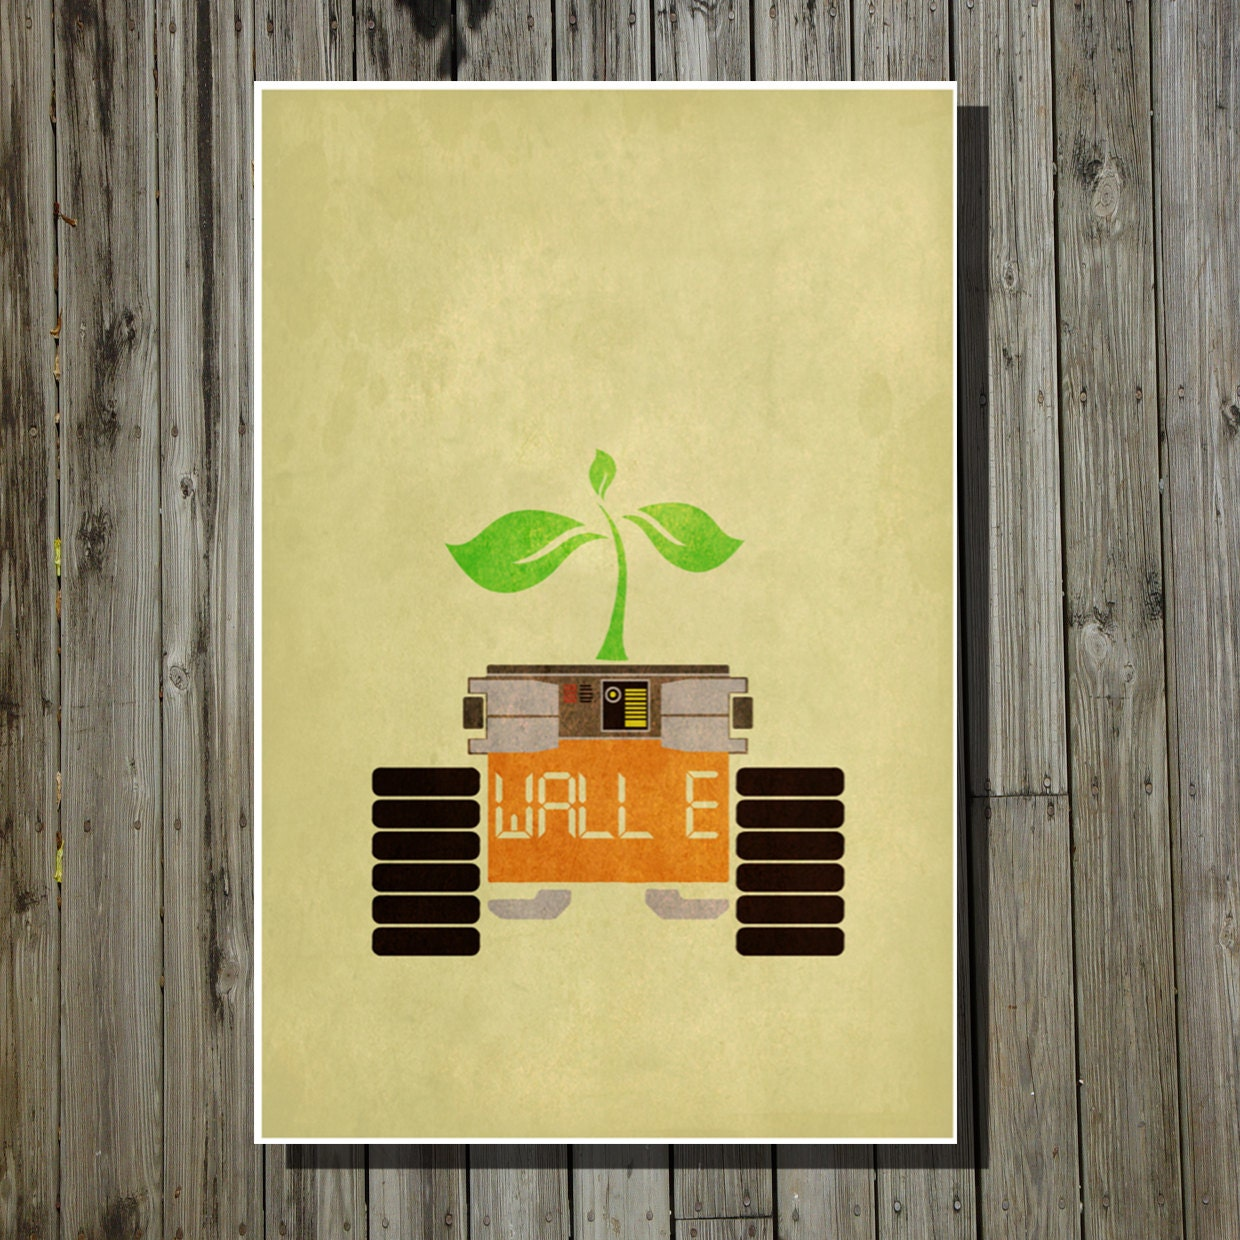 Wall-E movie poster Pixar print Disney minimalist movie art | Etsy